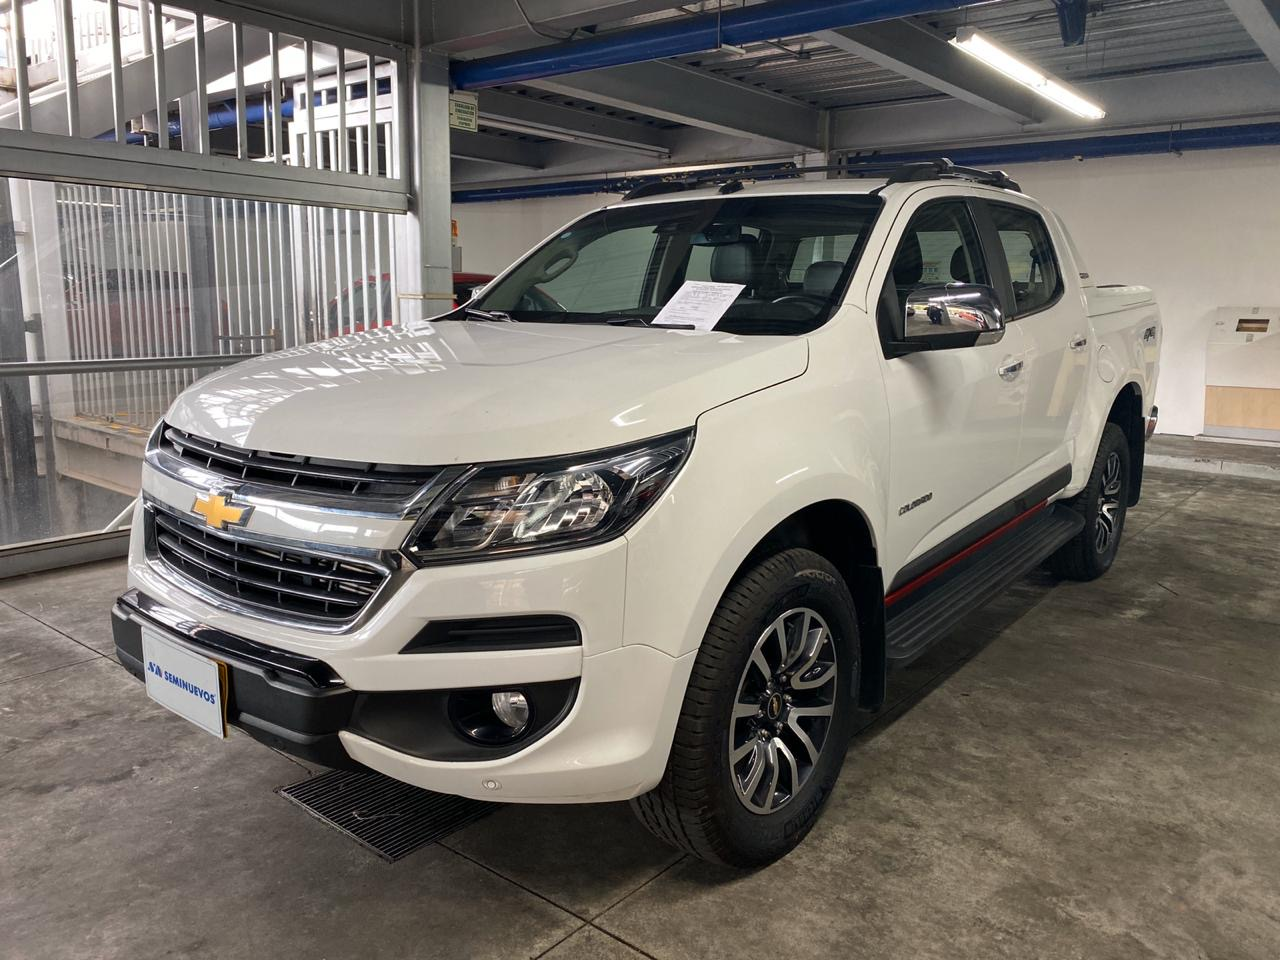 2019 CHEVROLET COLORADO HIGH COUNTRY PASAJEROS 2.8L